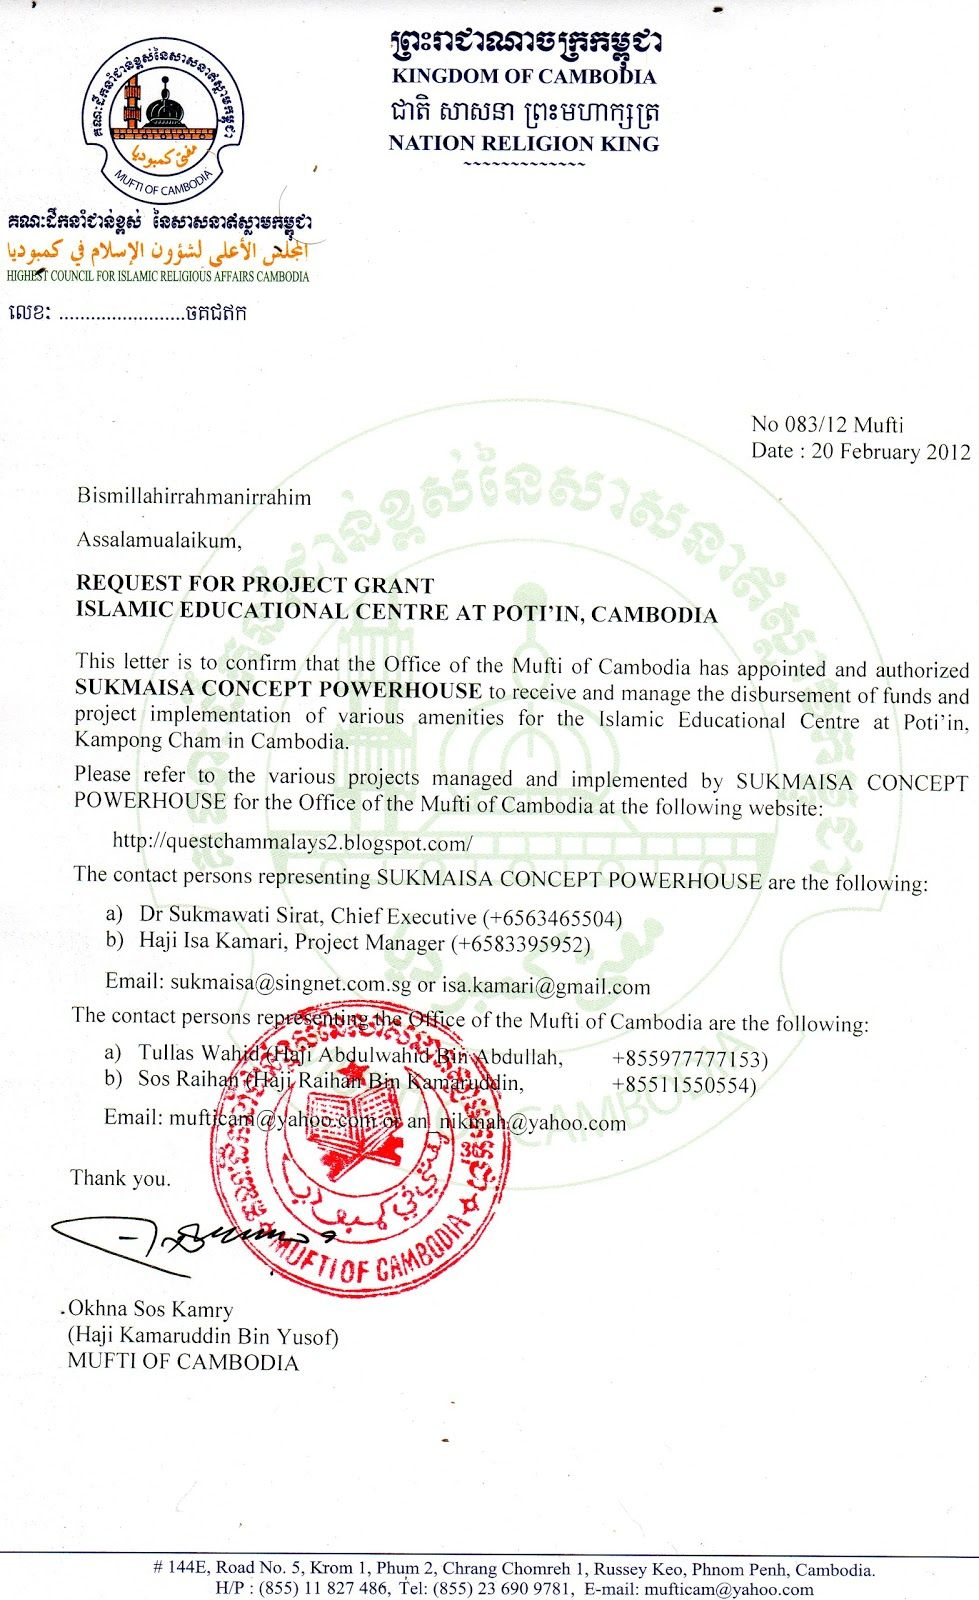 Quest the cham malays cambodia authorization letter from sample quest the cham malays cambodia authorization letter from sample printable formats spiritdancerdesigns Image collections